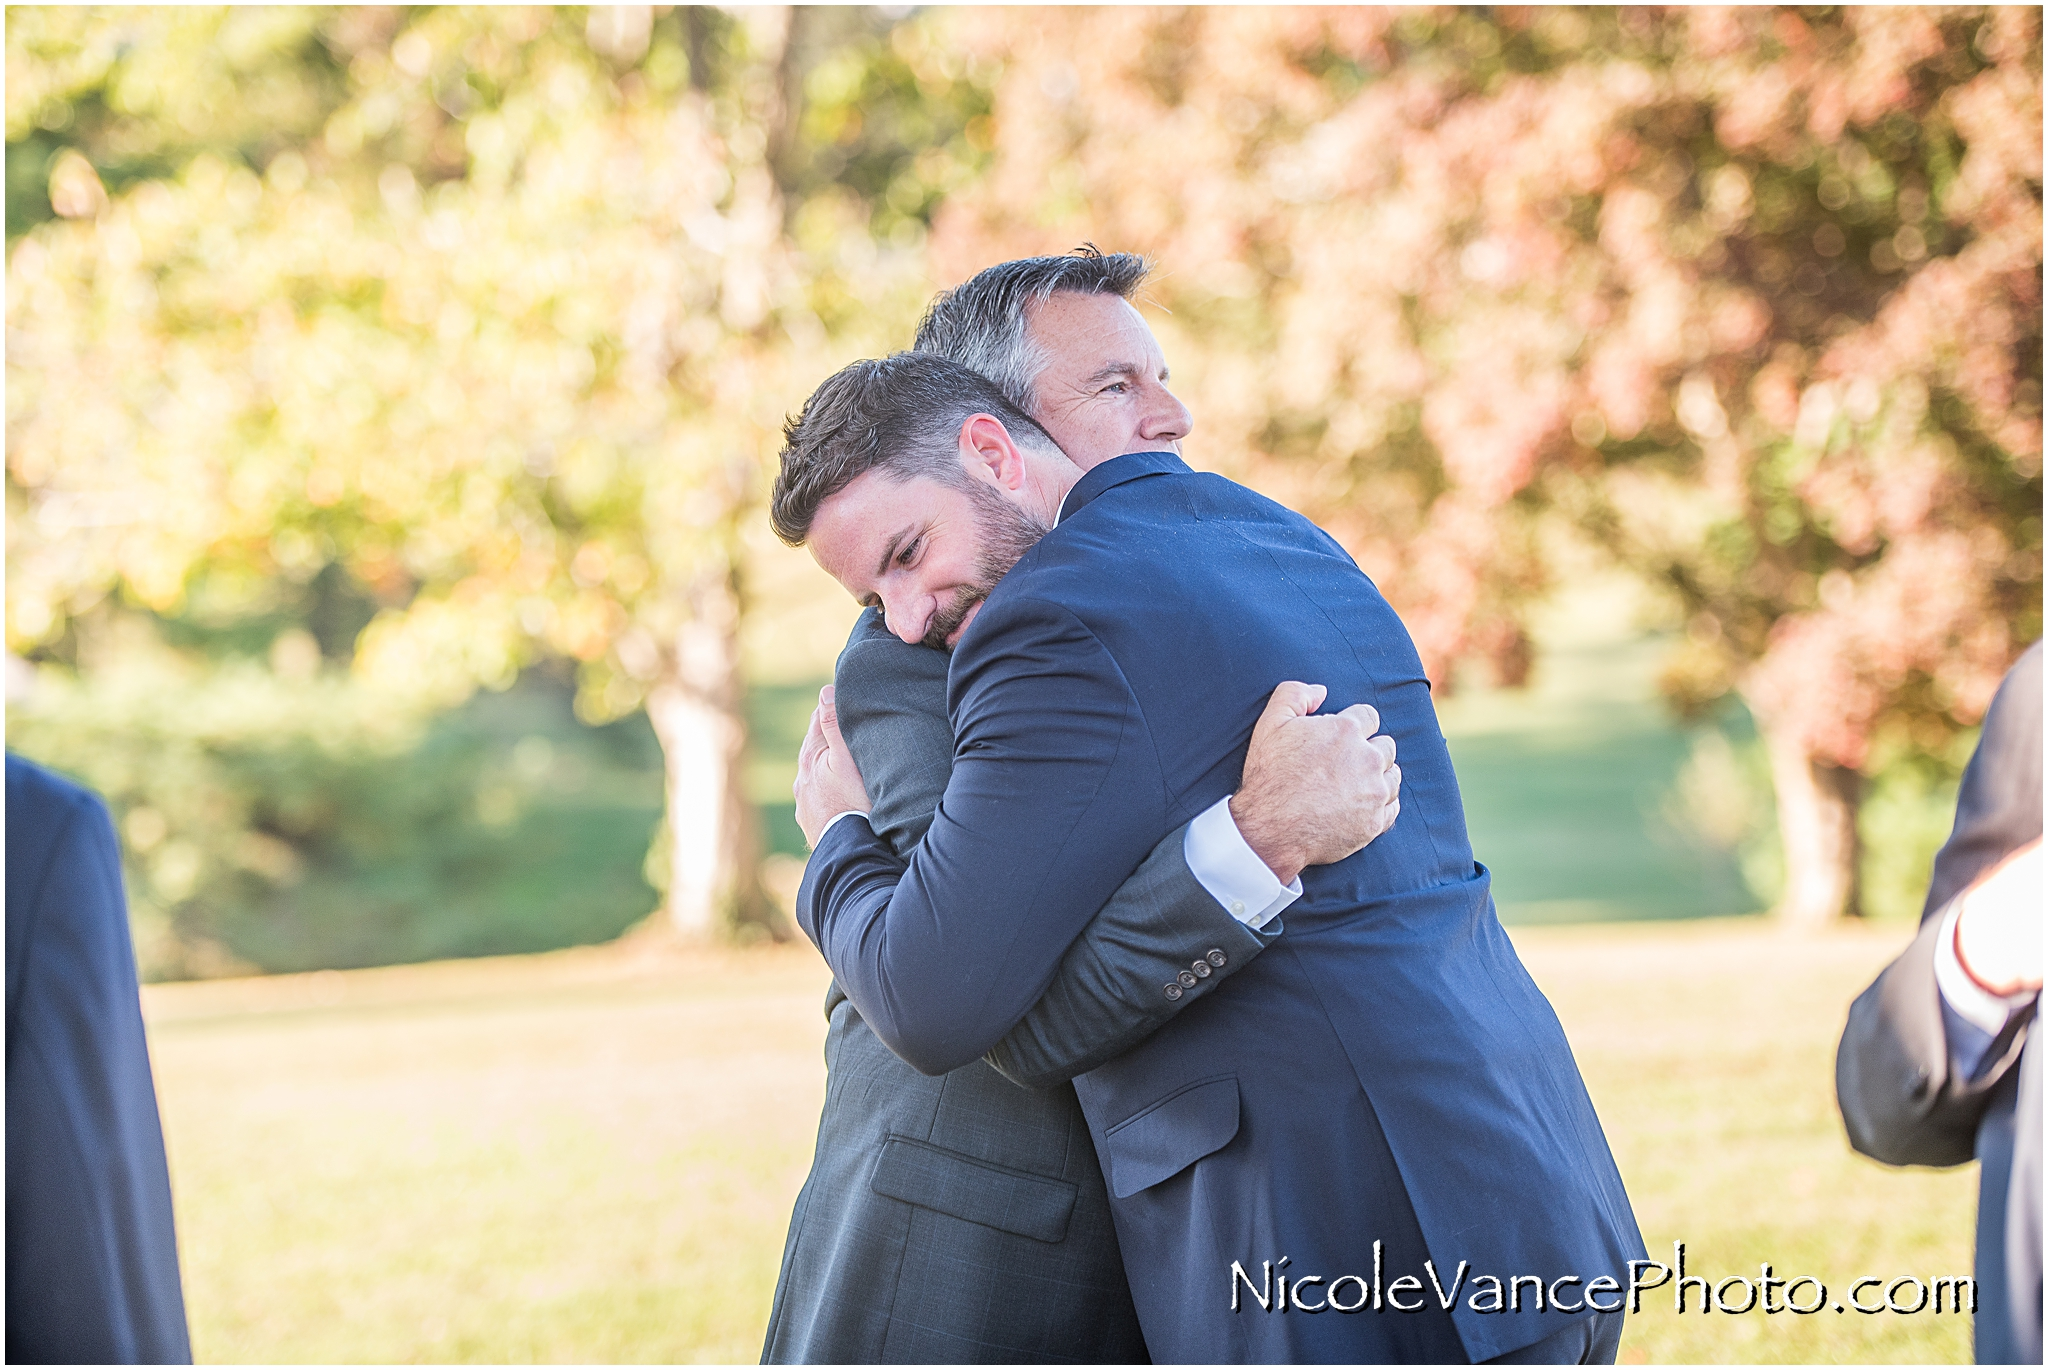 Father and son embrace after the wedding ceremony.